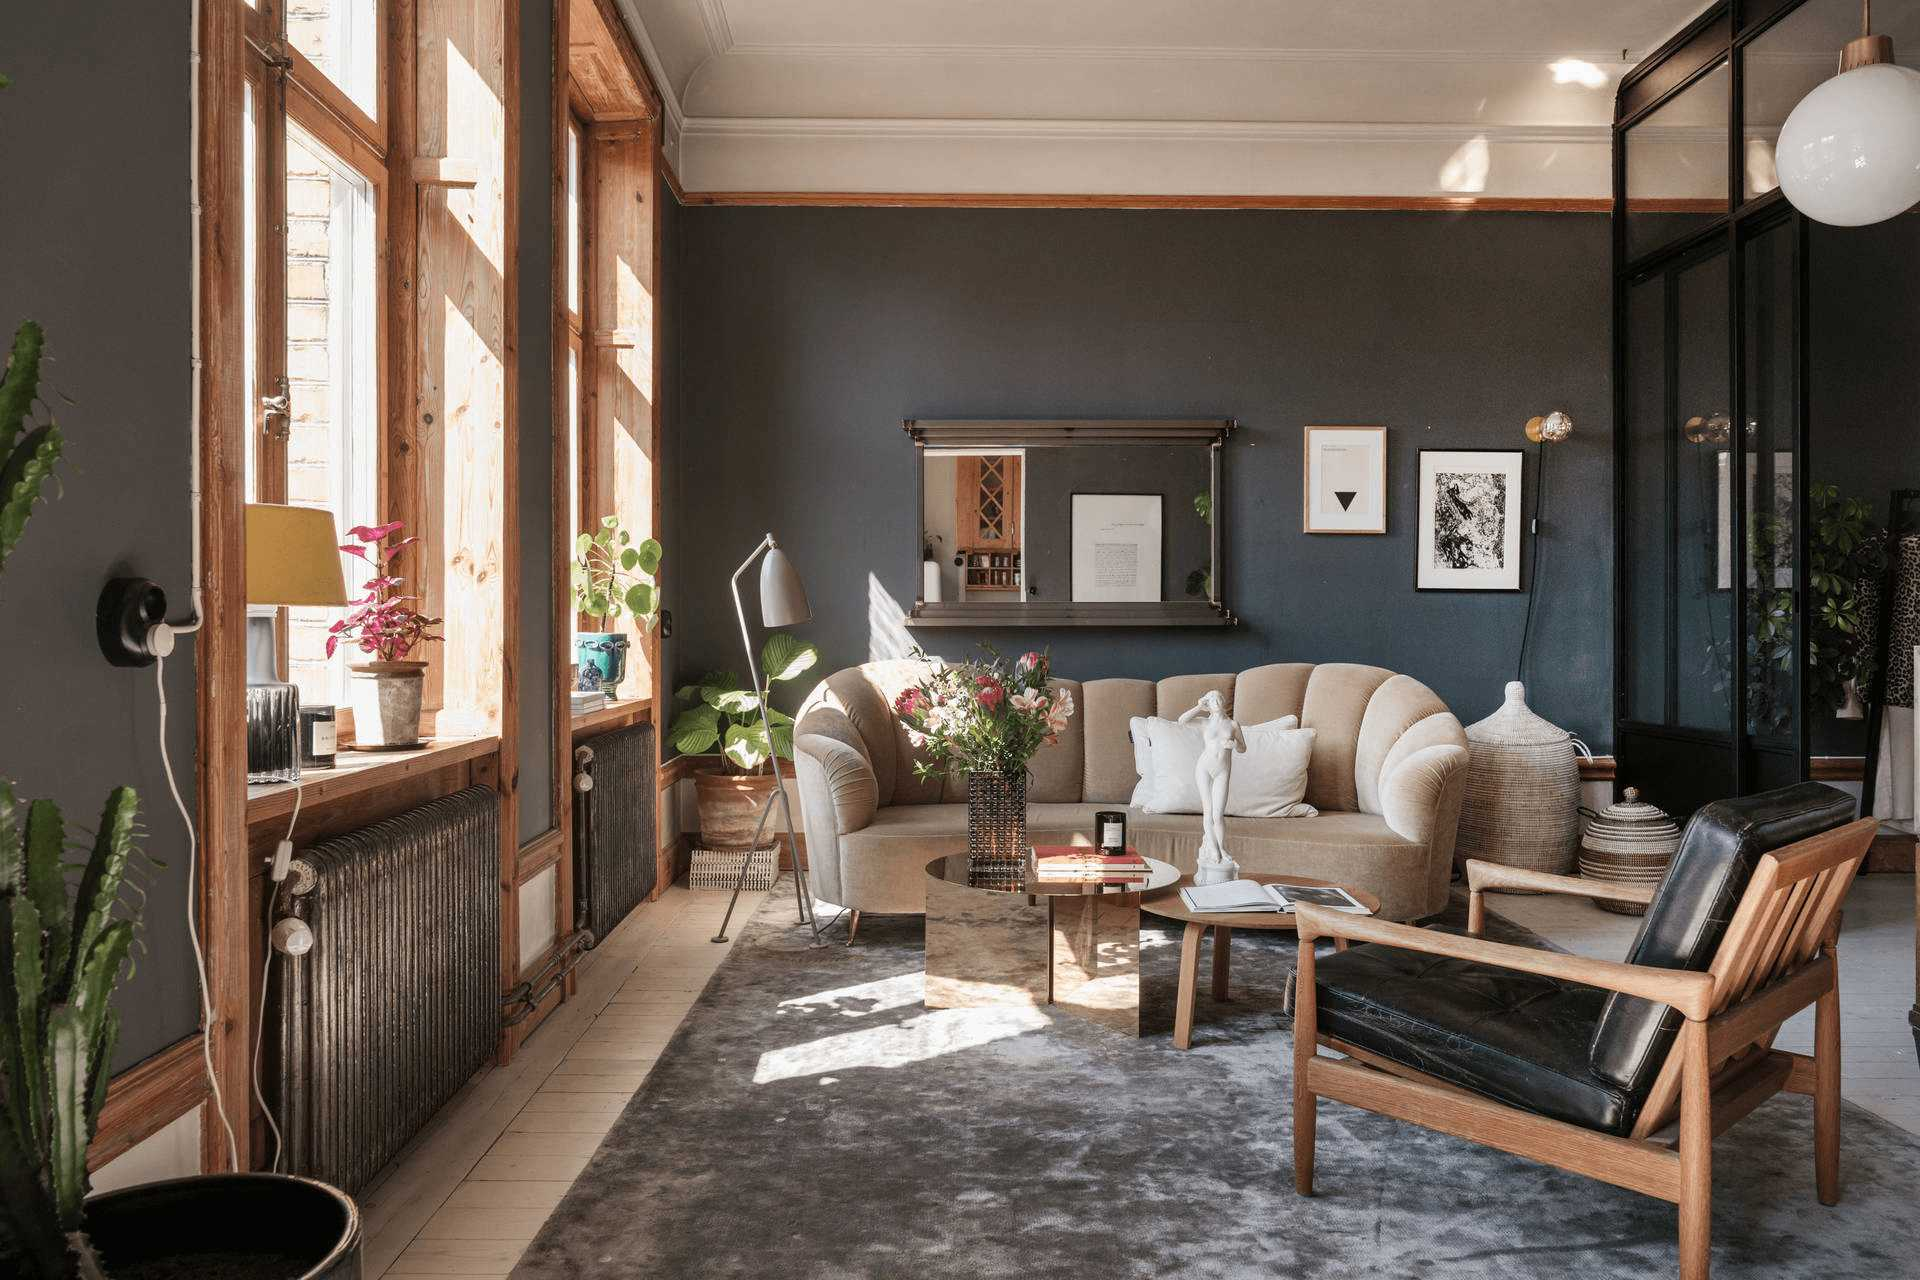 this-is-a-wooden-styled-Scandinavian-apartment-with-a-blend-of-industrial-and-vintage